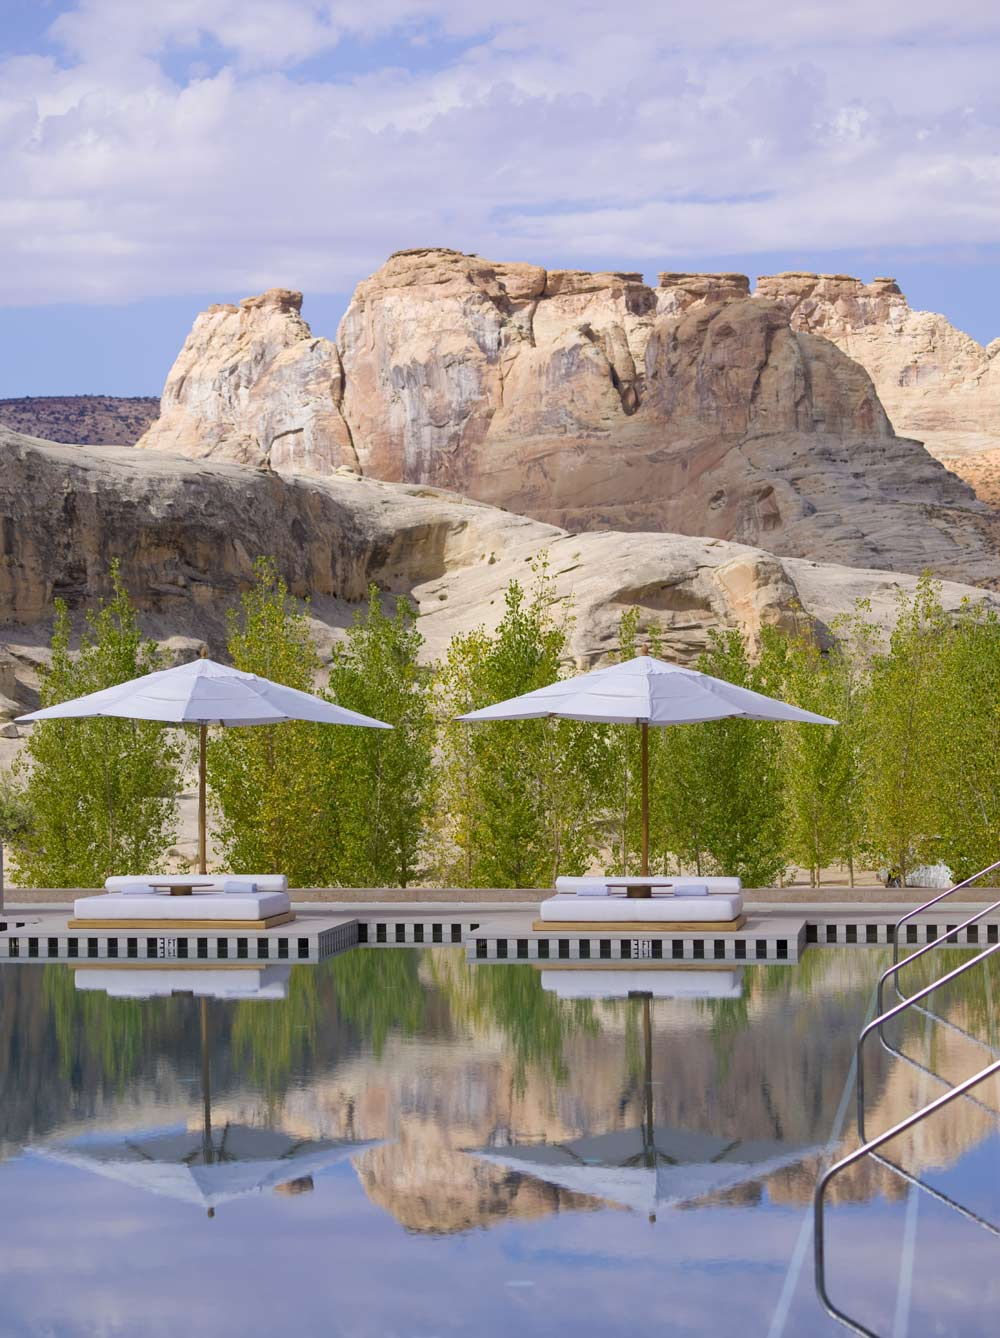 Poolside at Amangiri in Canyon Point, Southern Utah courtesy of Amanresorts